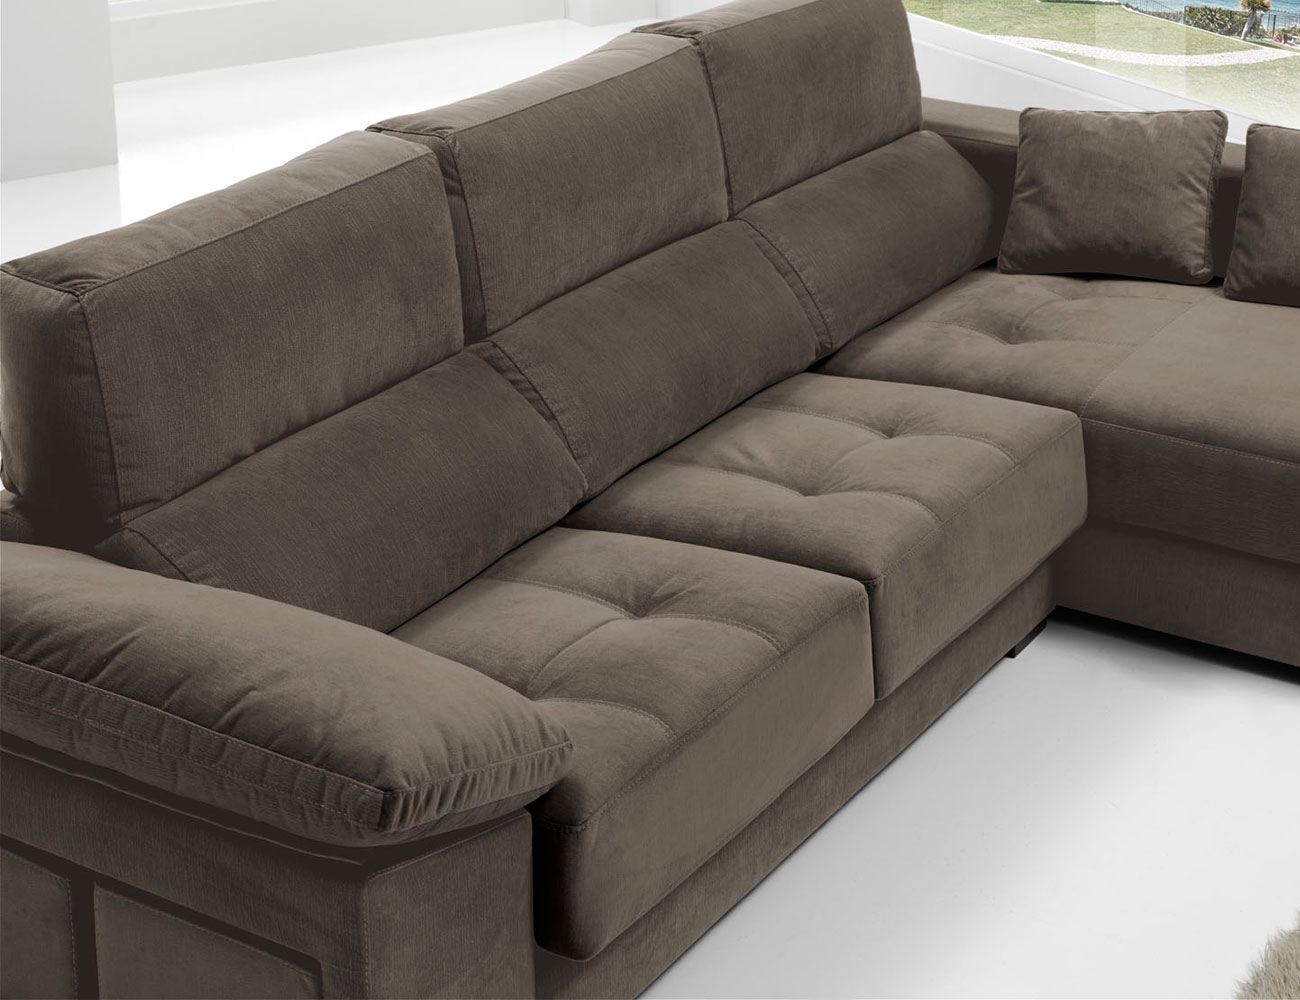 Sofa chaiselongue anti manchas bering pouf 226